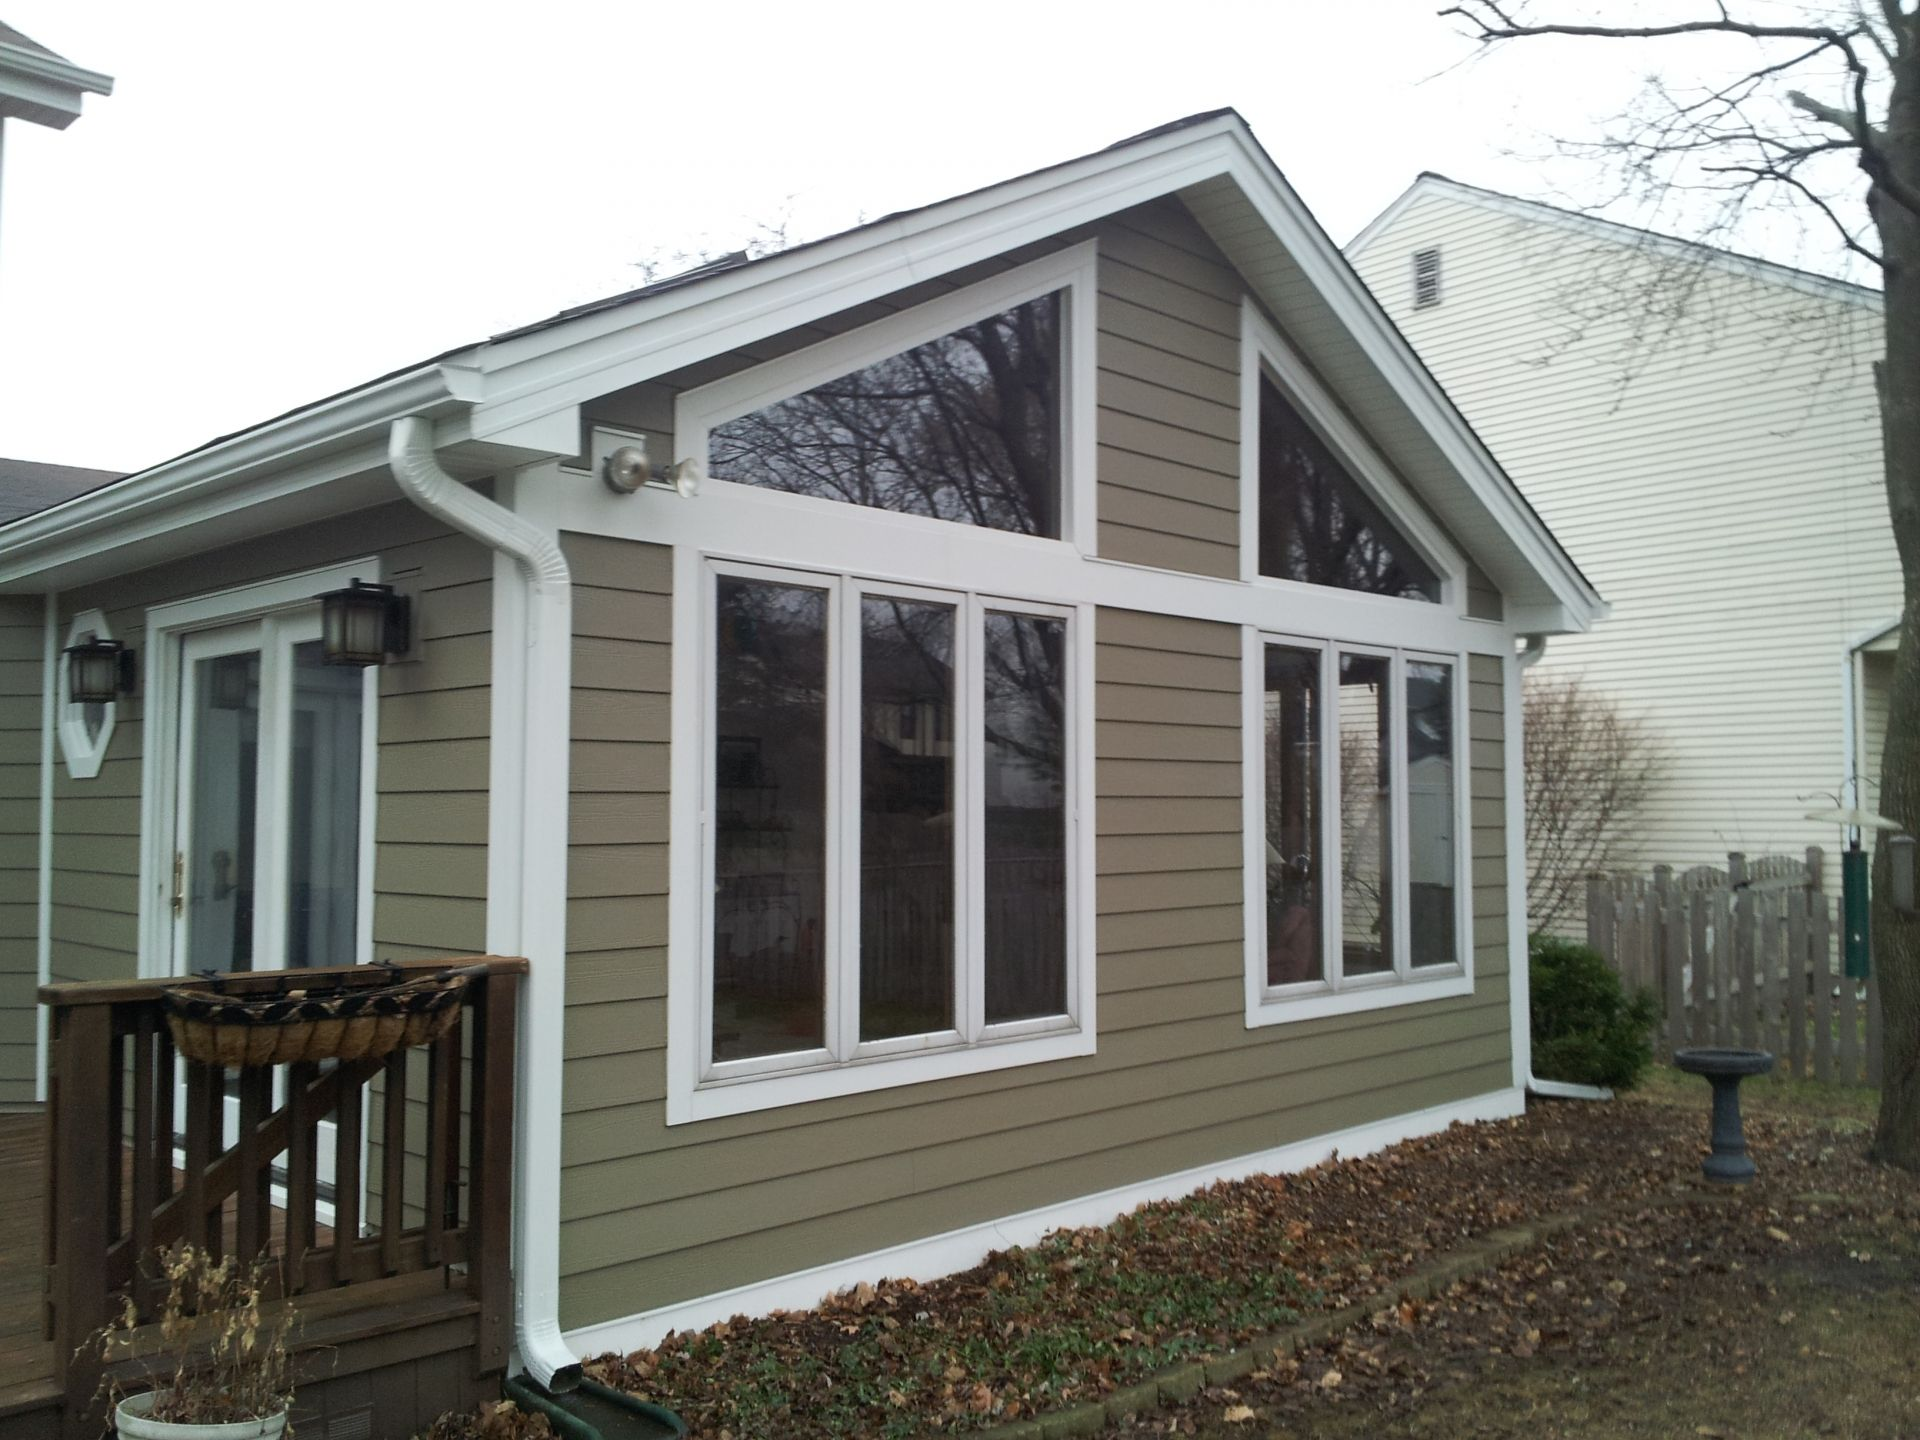 Andersen 100 series windows james hardie lap siding for James hardie